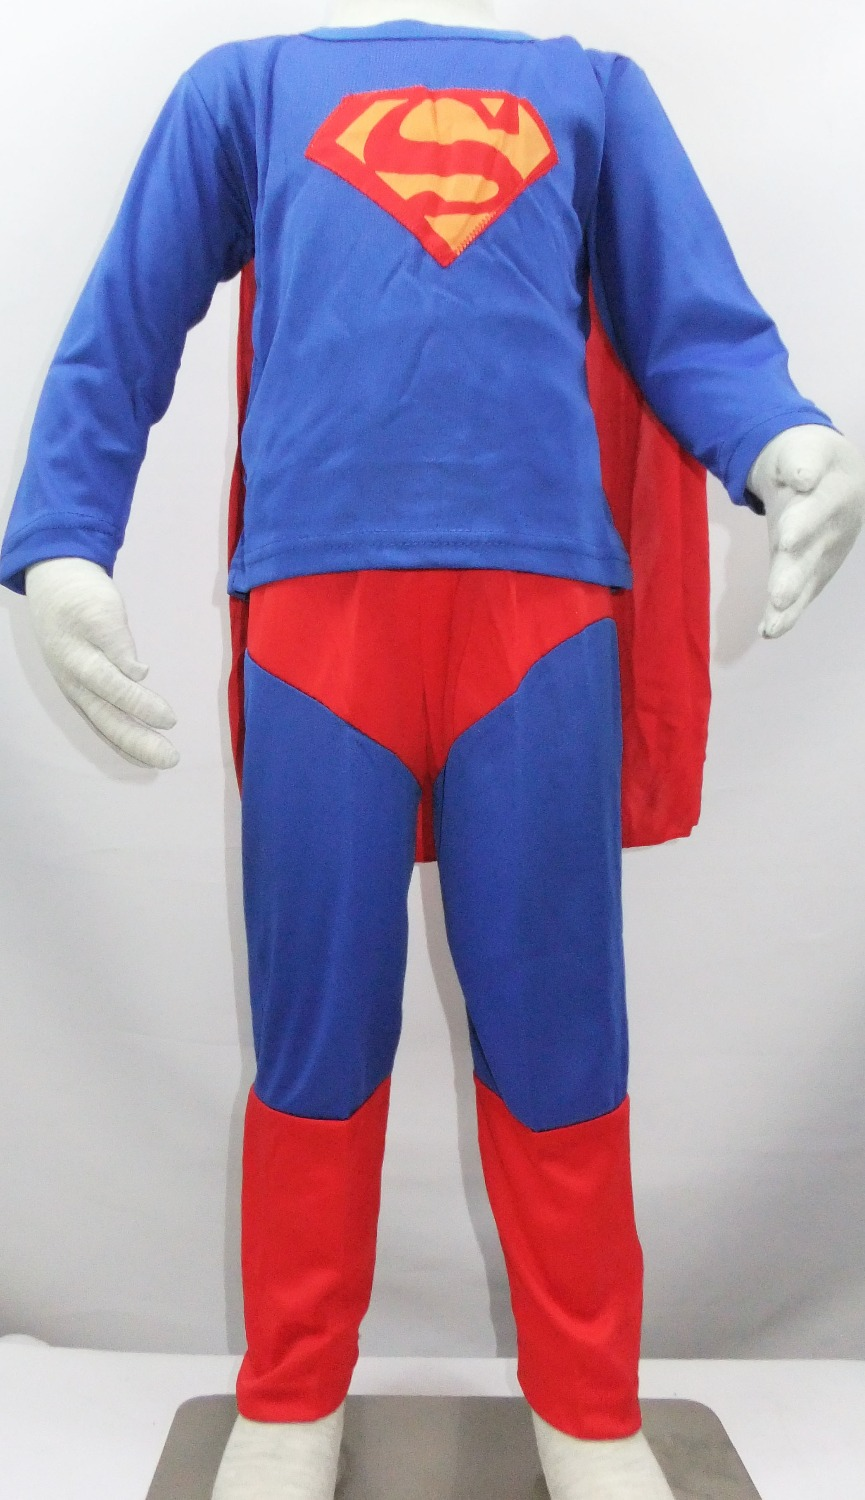 wholesal retail - Halloween Party costumes 3 - 7 Years kid superman Play clothes/Boy superman costume Cosplay T- shirt